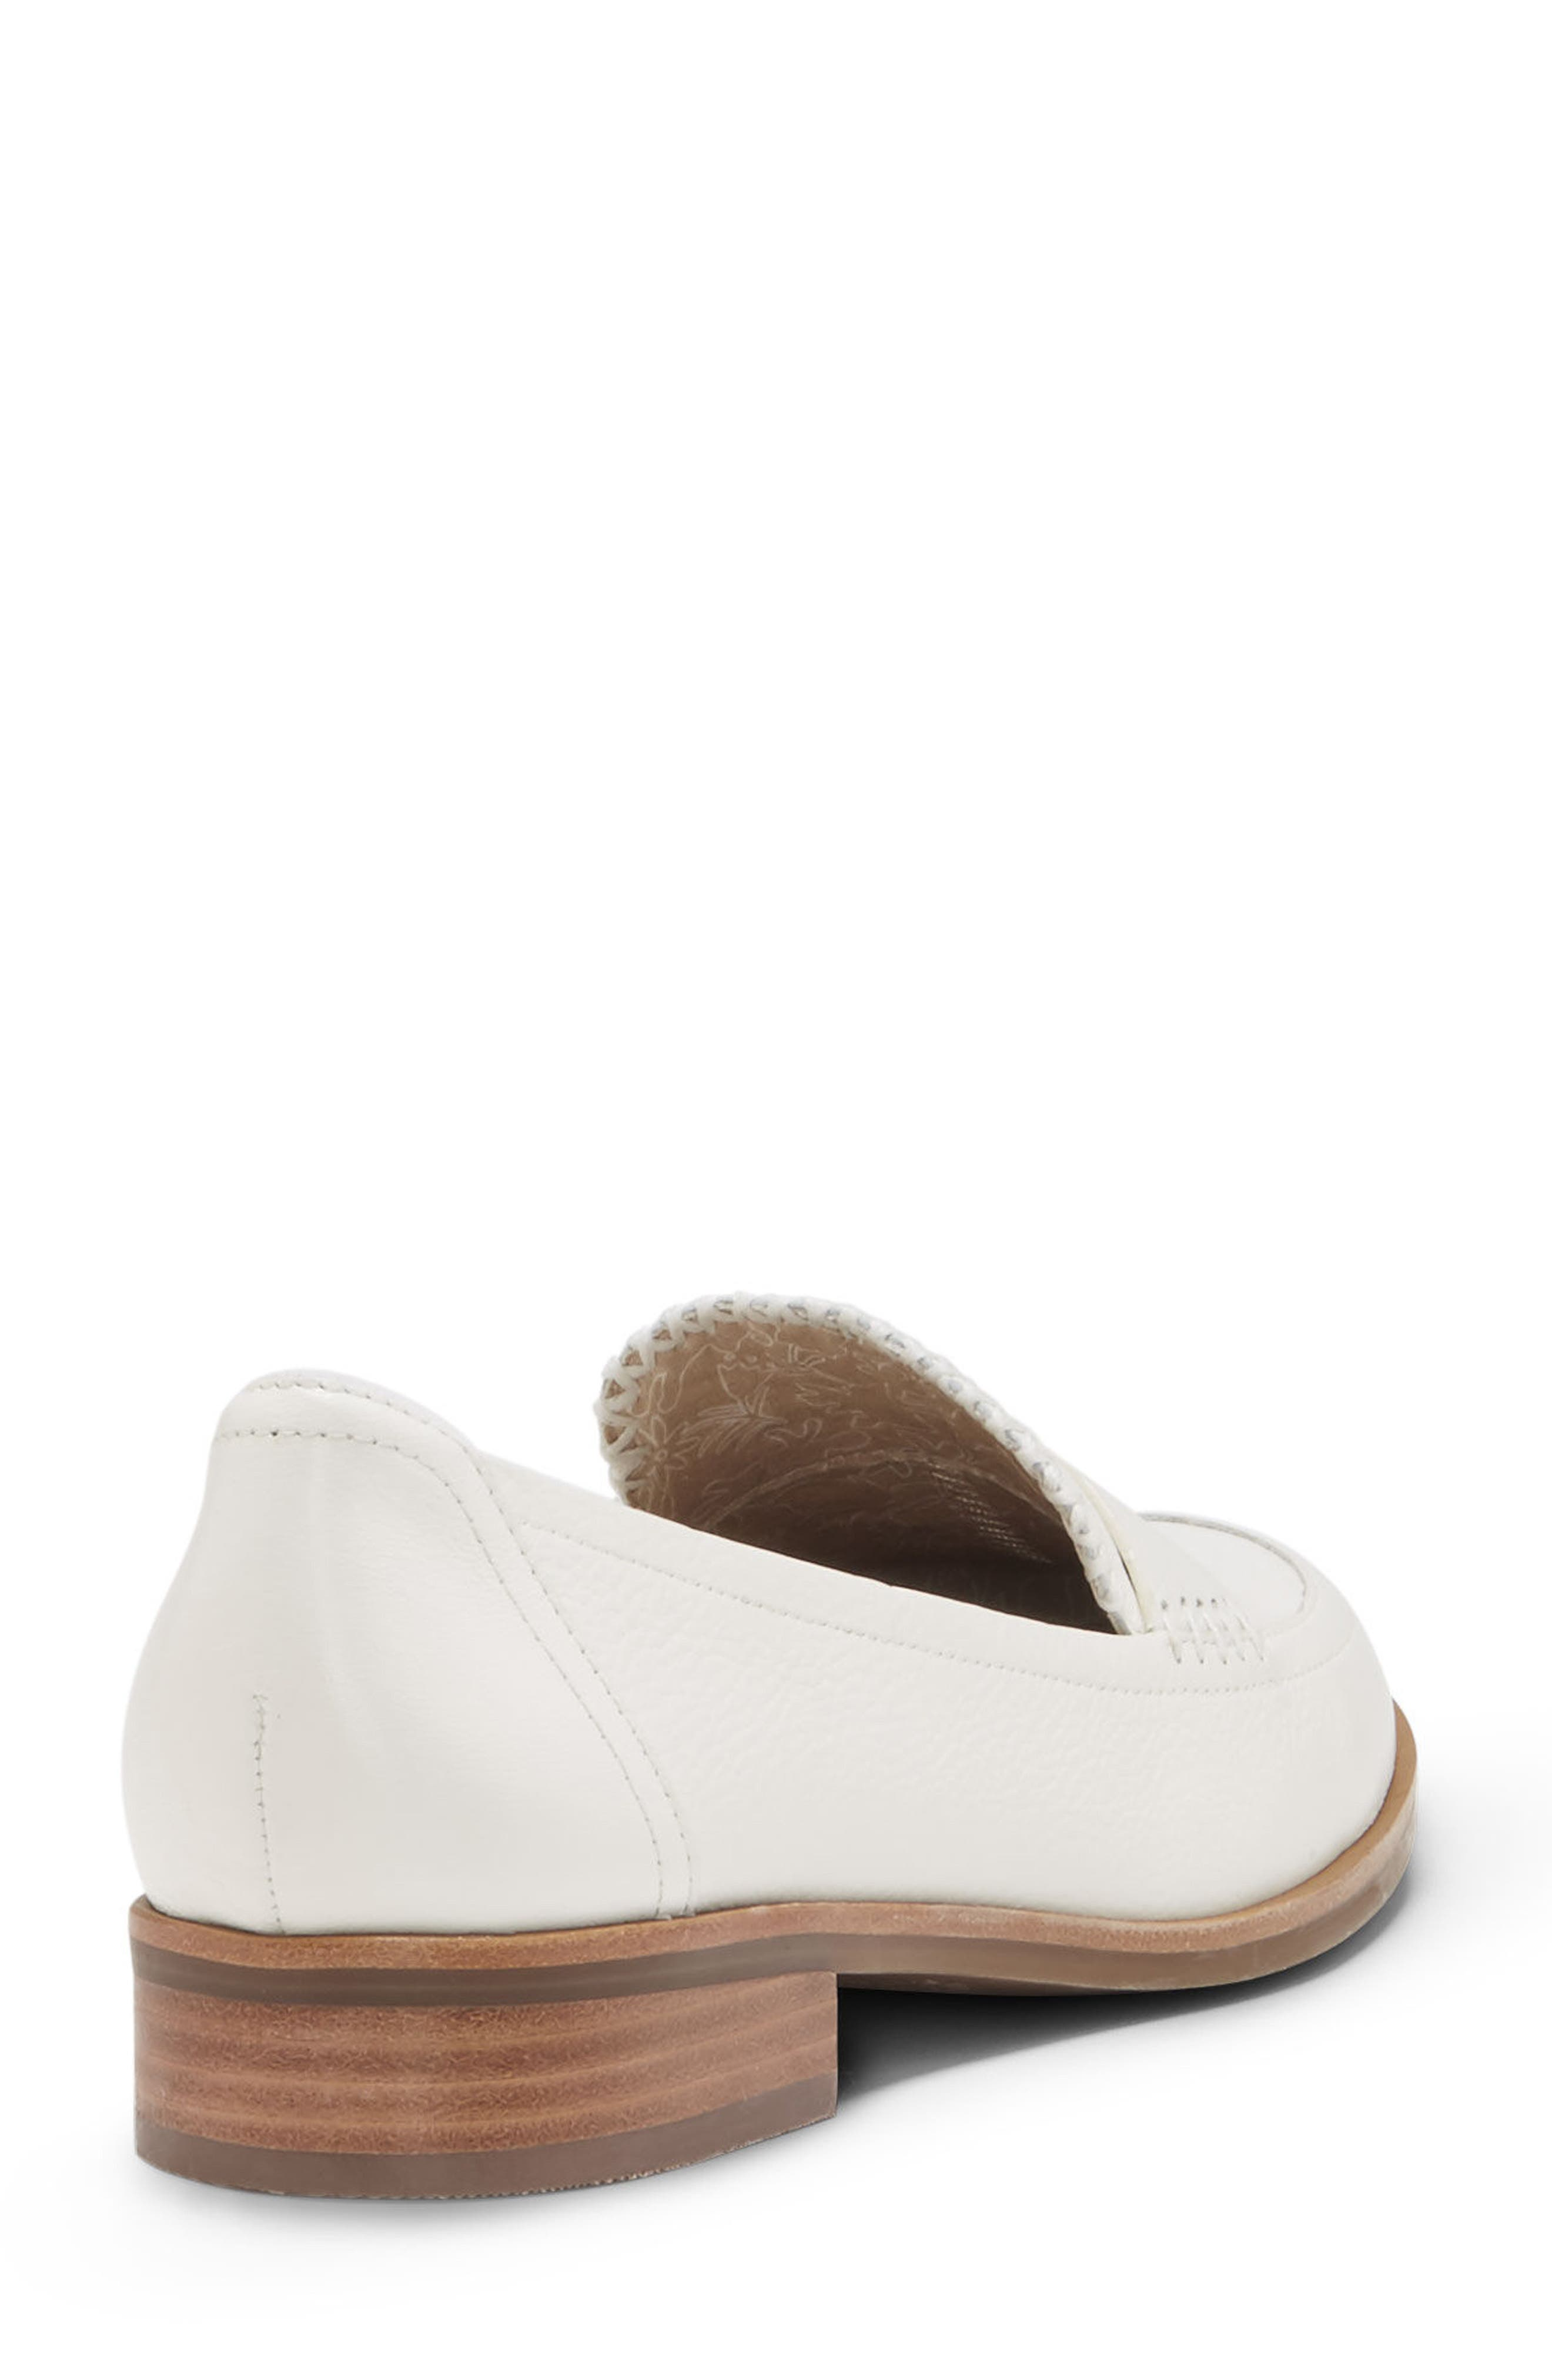 Laddie Loafer,                             Alternate thumbnail 2, color,                             MILK LEATHER